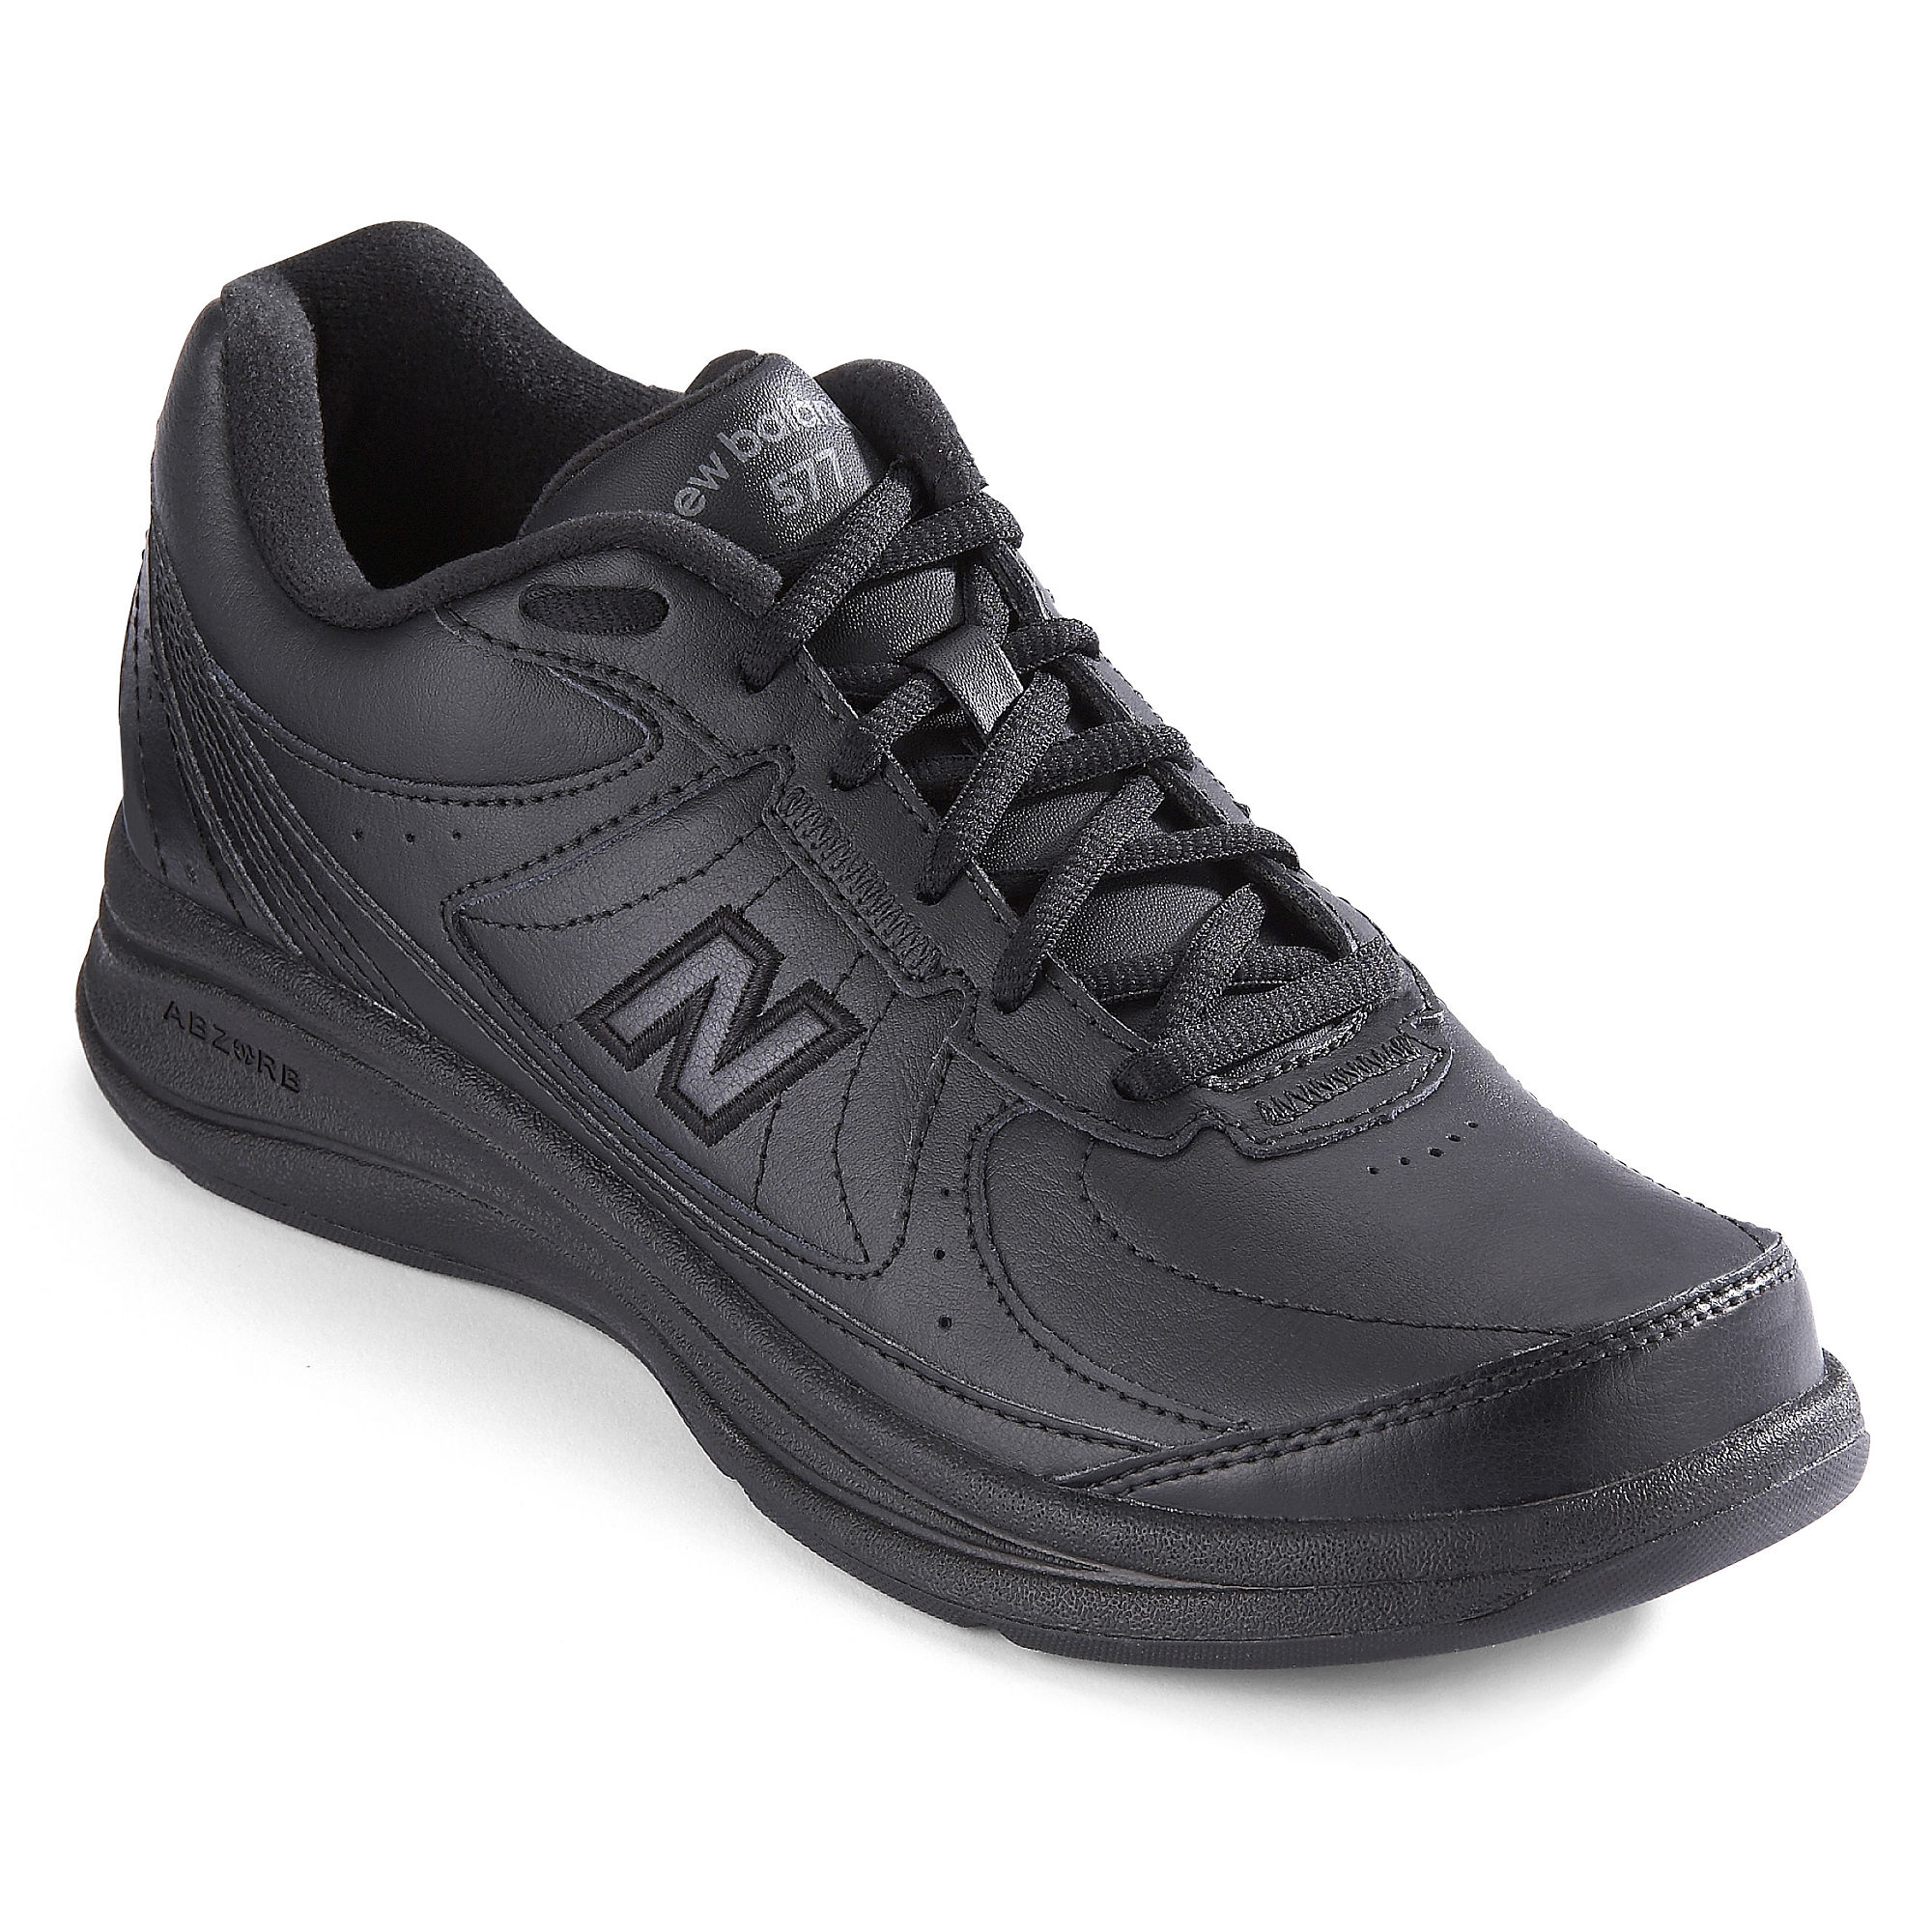 New Balance White Womens Walking Shoes